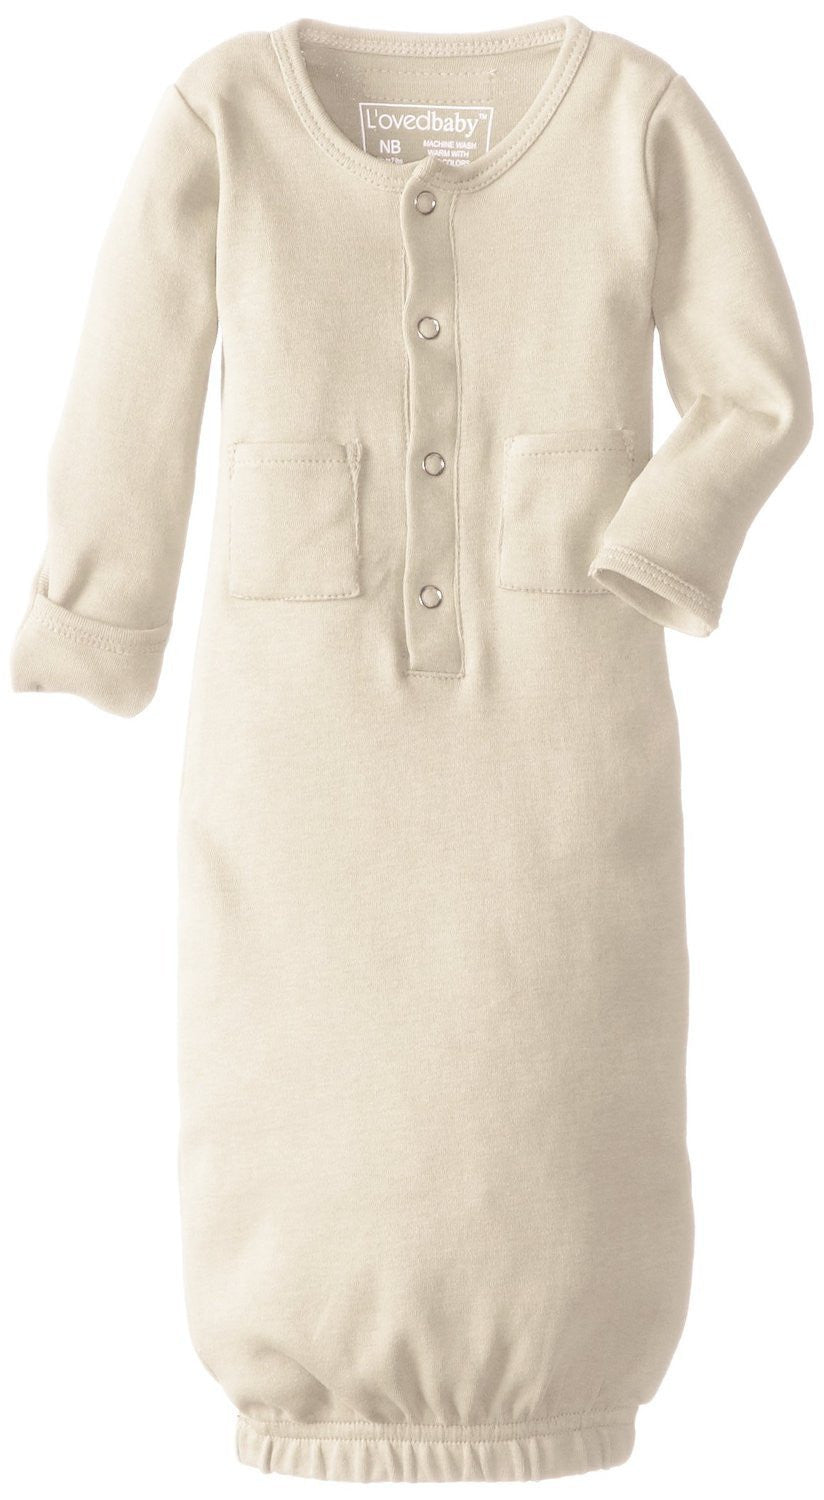 fawn&forest Organic Sleeping Gown - fawn&forest